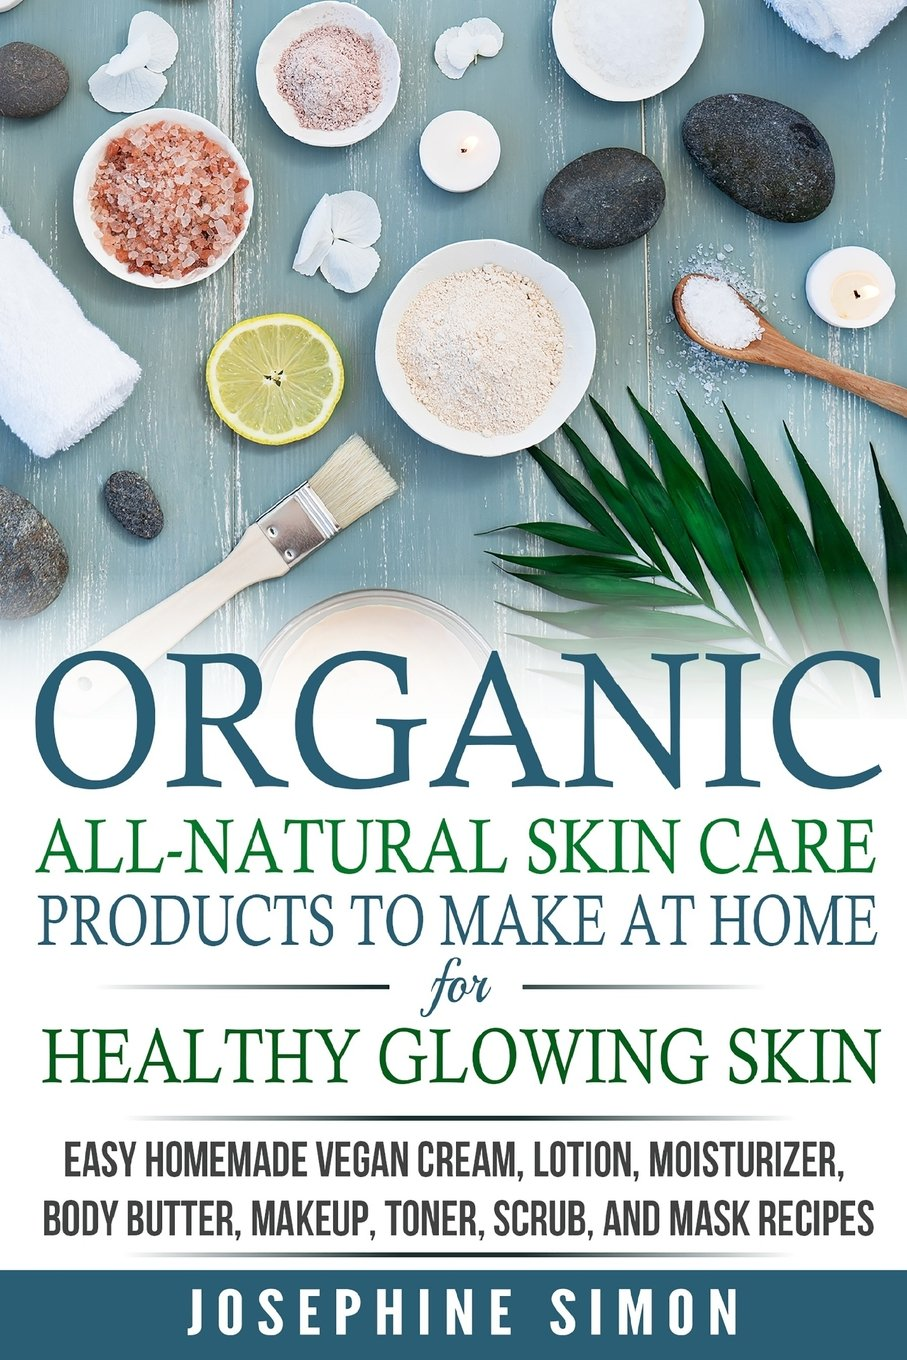 Organic All-Natural Skin Products to Make at Home for Healthy Glowing Skin: Easy Homemade Vegan Cream, Lotion, Moisturizer, Body Butter, Makeup, .